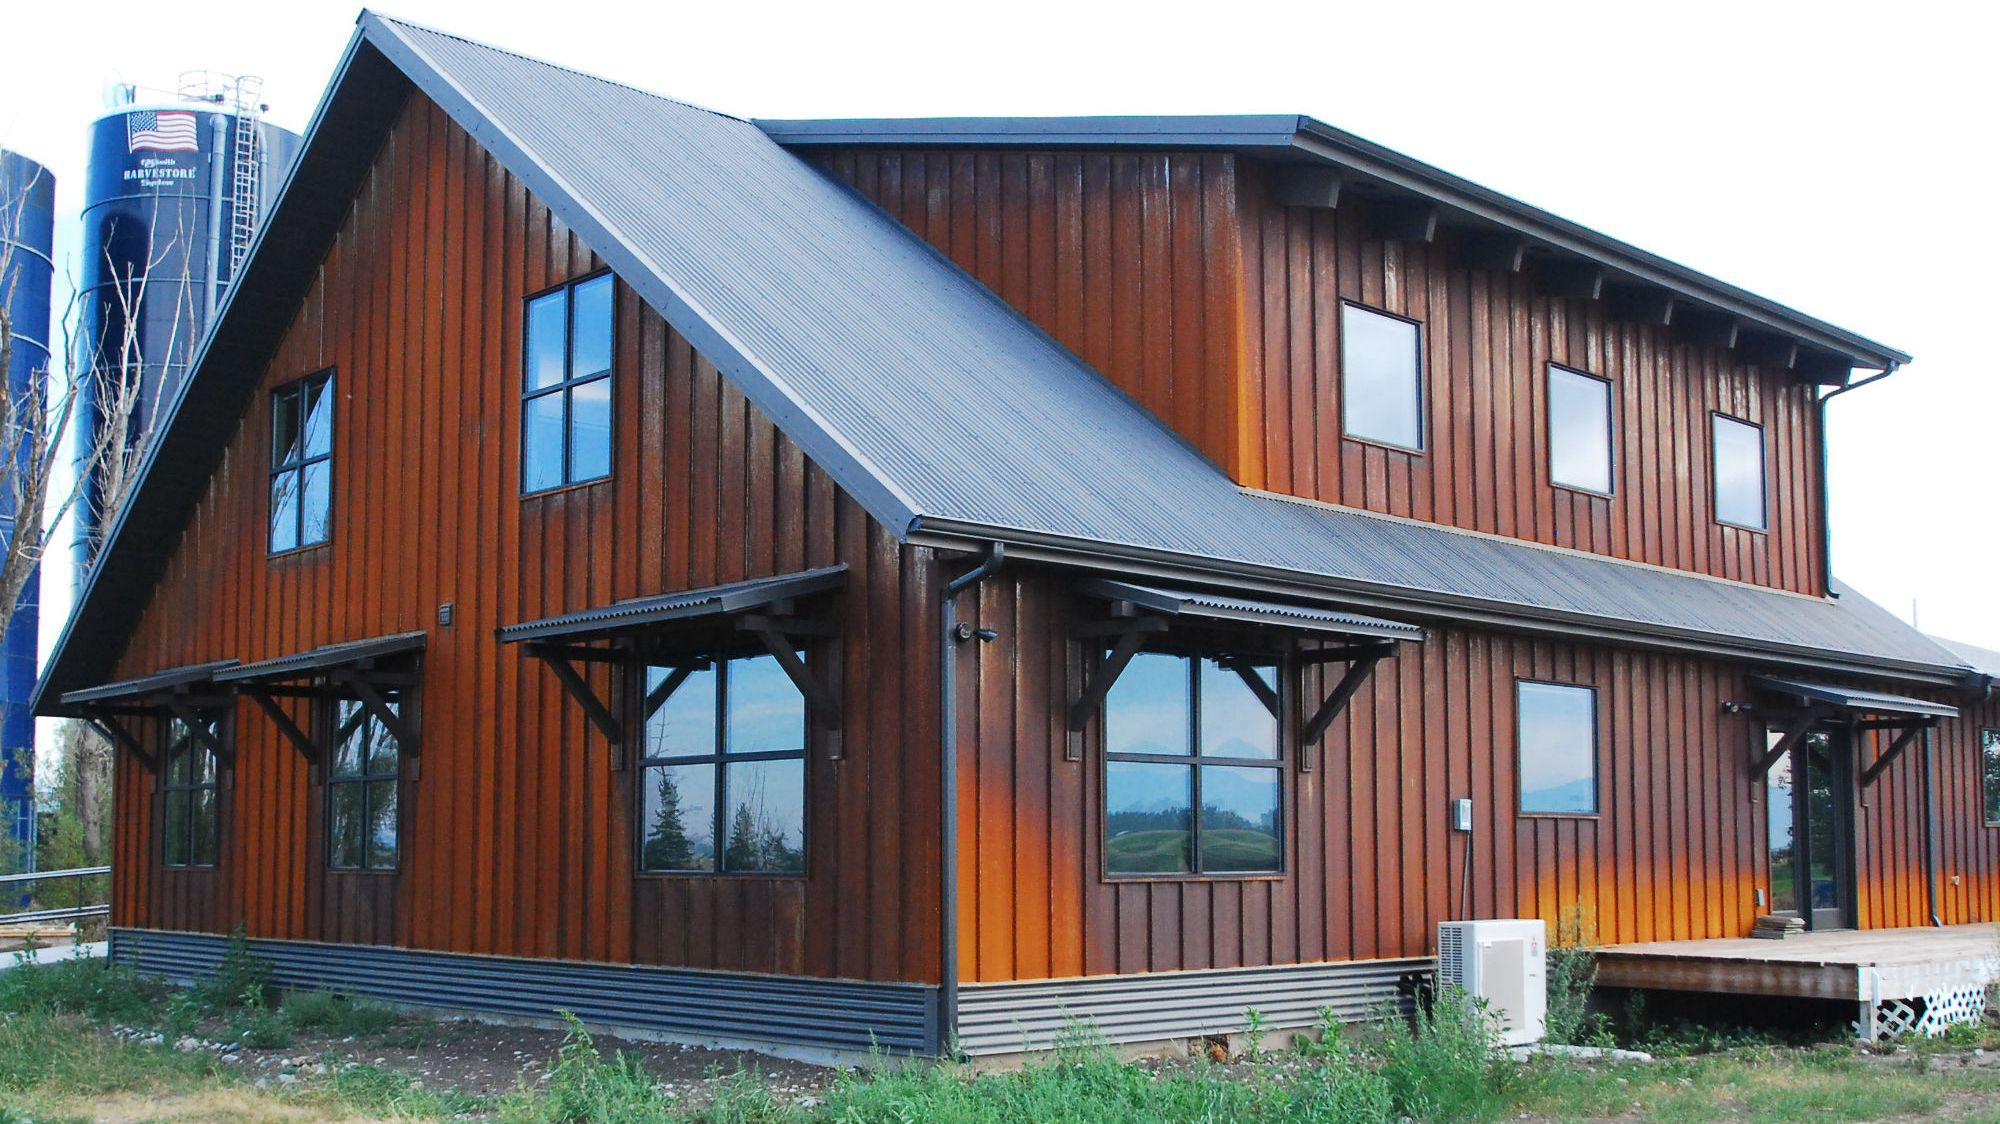 The Highly Durable Steel Siding By High Quality Siding Products House Siding Options Metal Building Homes Steel Building Homes